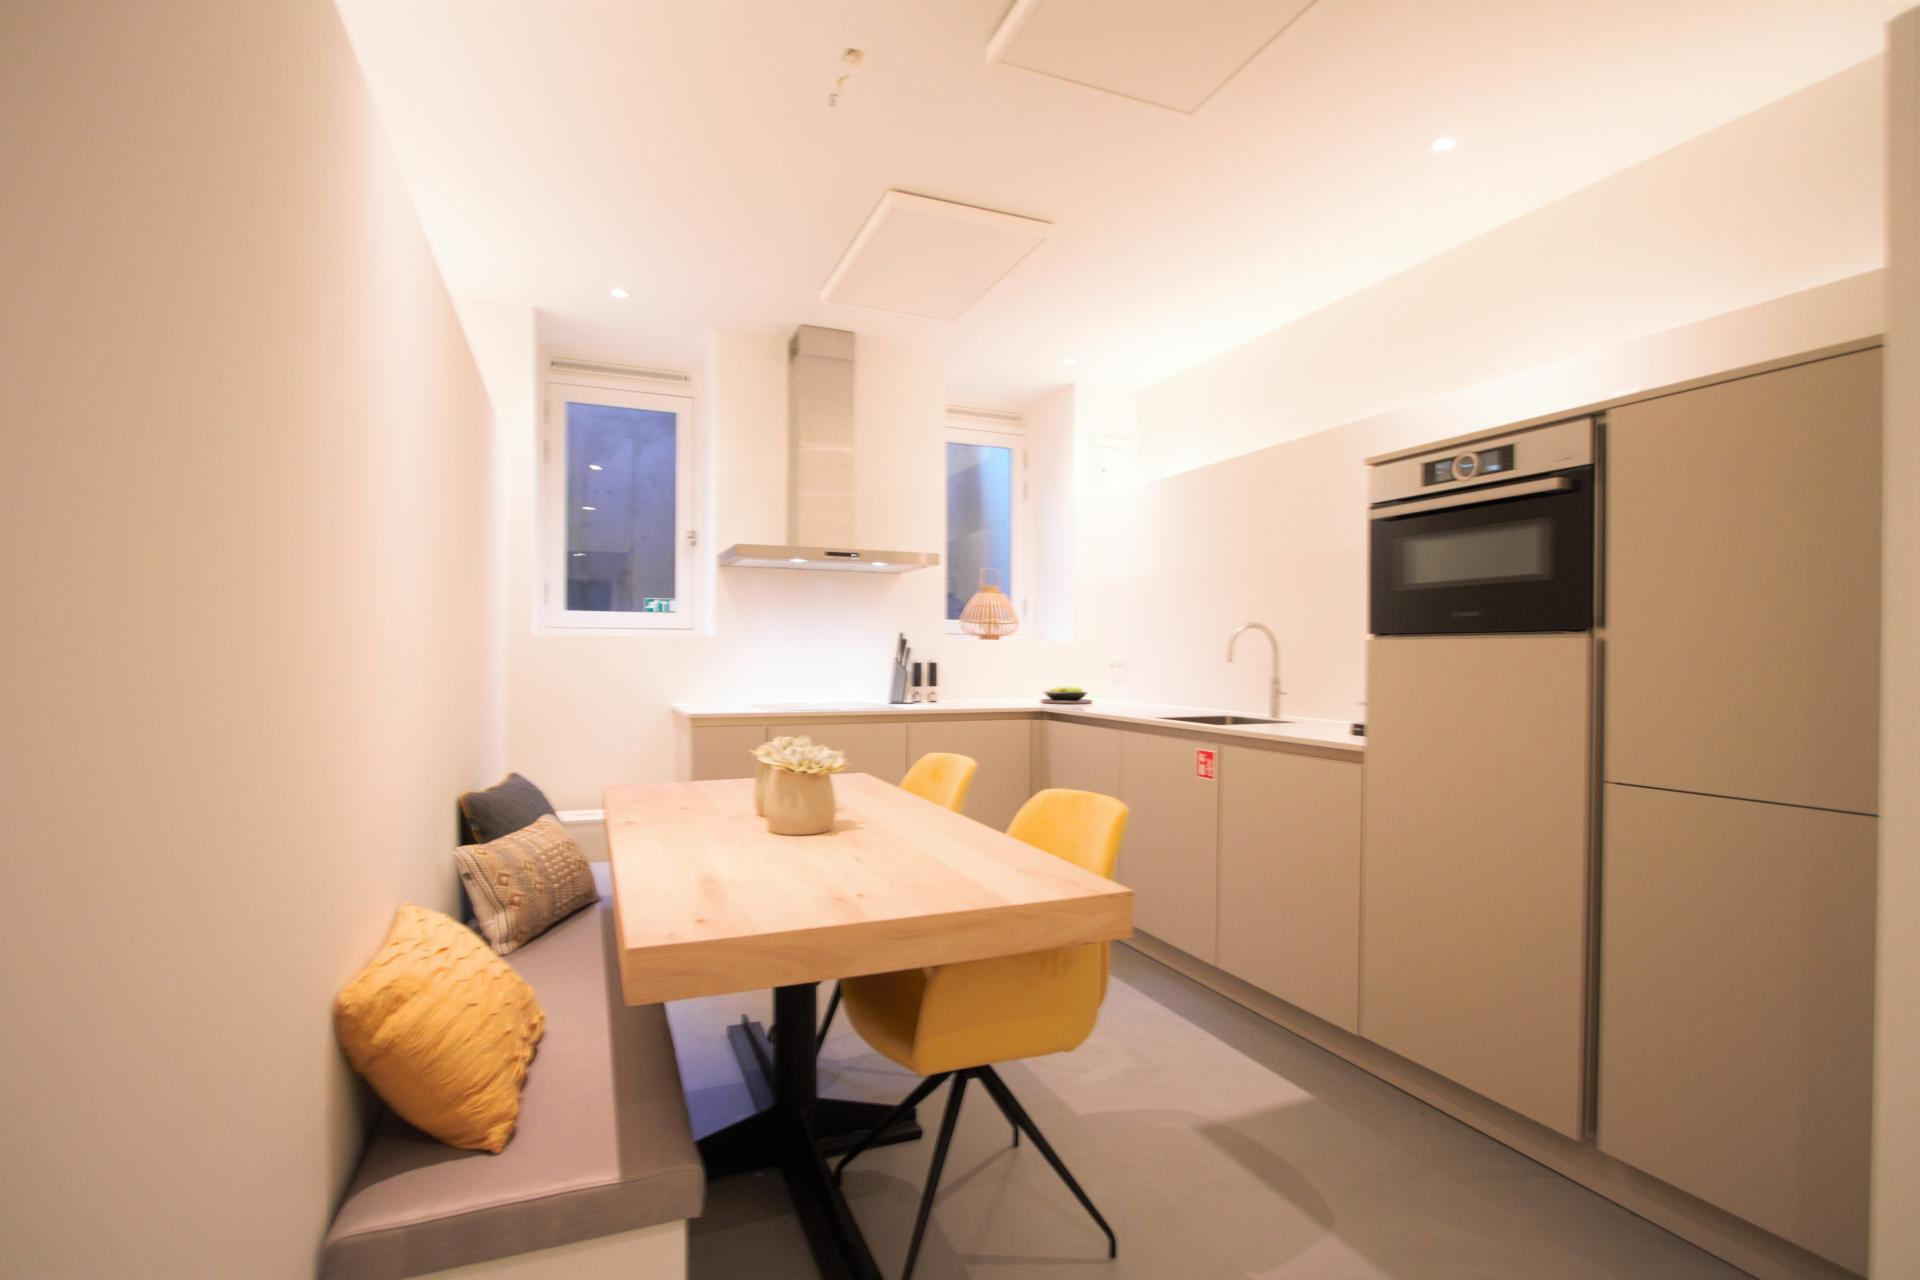 Kitchen at Frederiks Square Serviced Apartments, Amsterdam